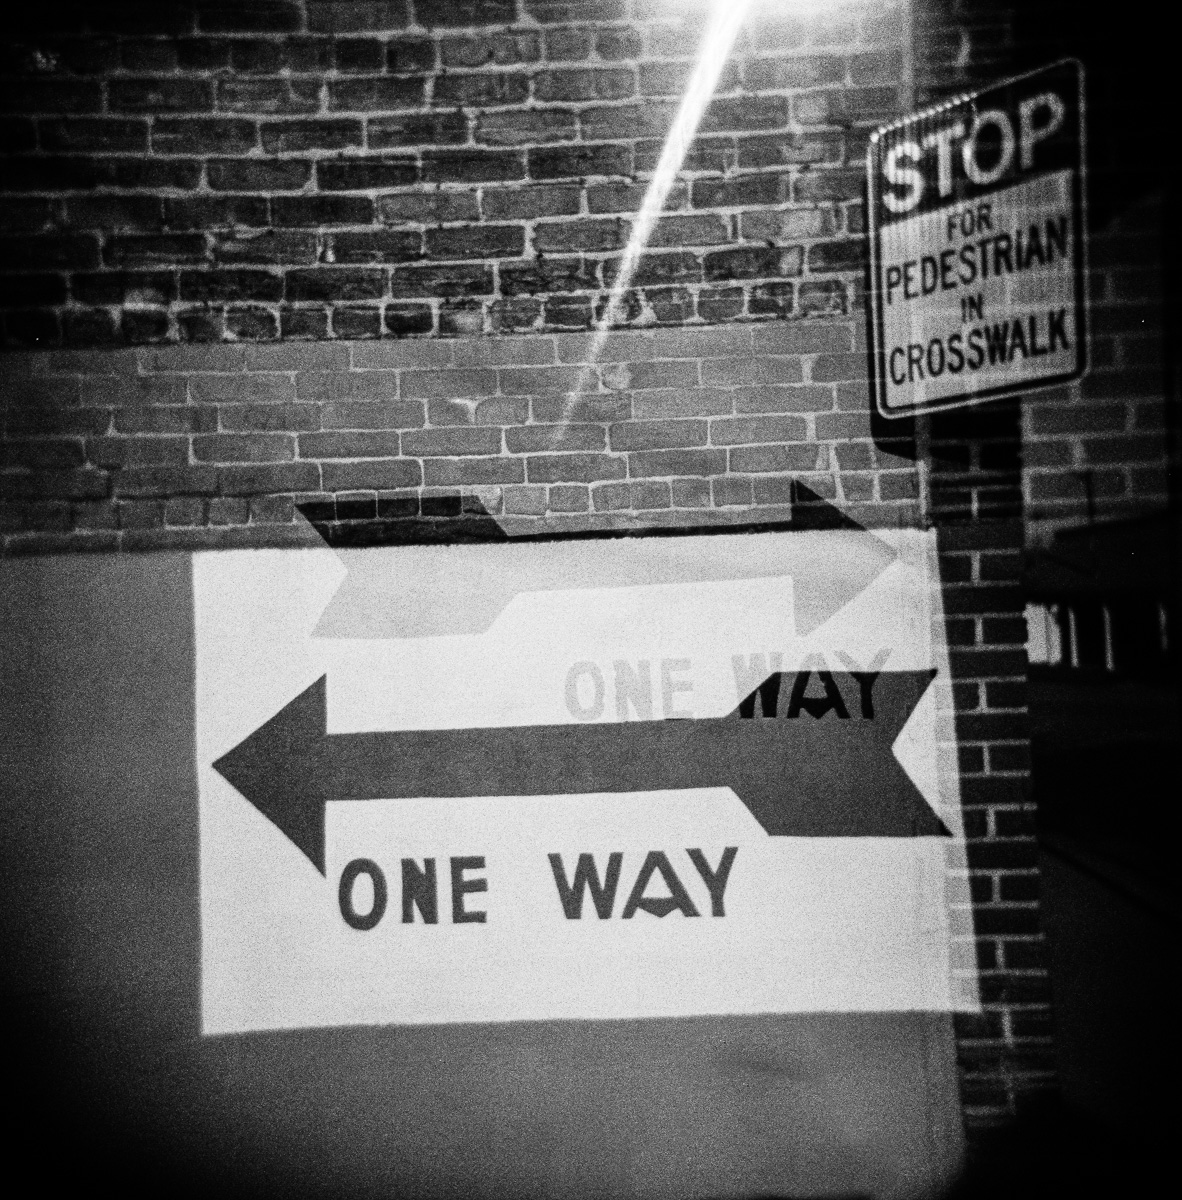 Double Exposure of two one way signs going in opposite directions.